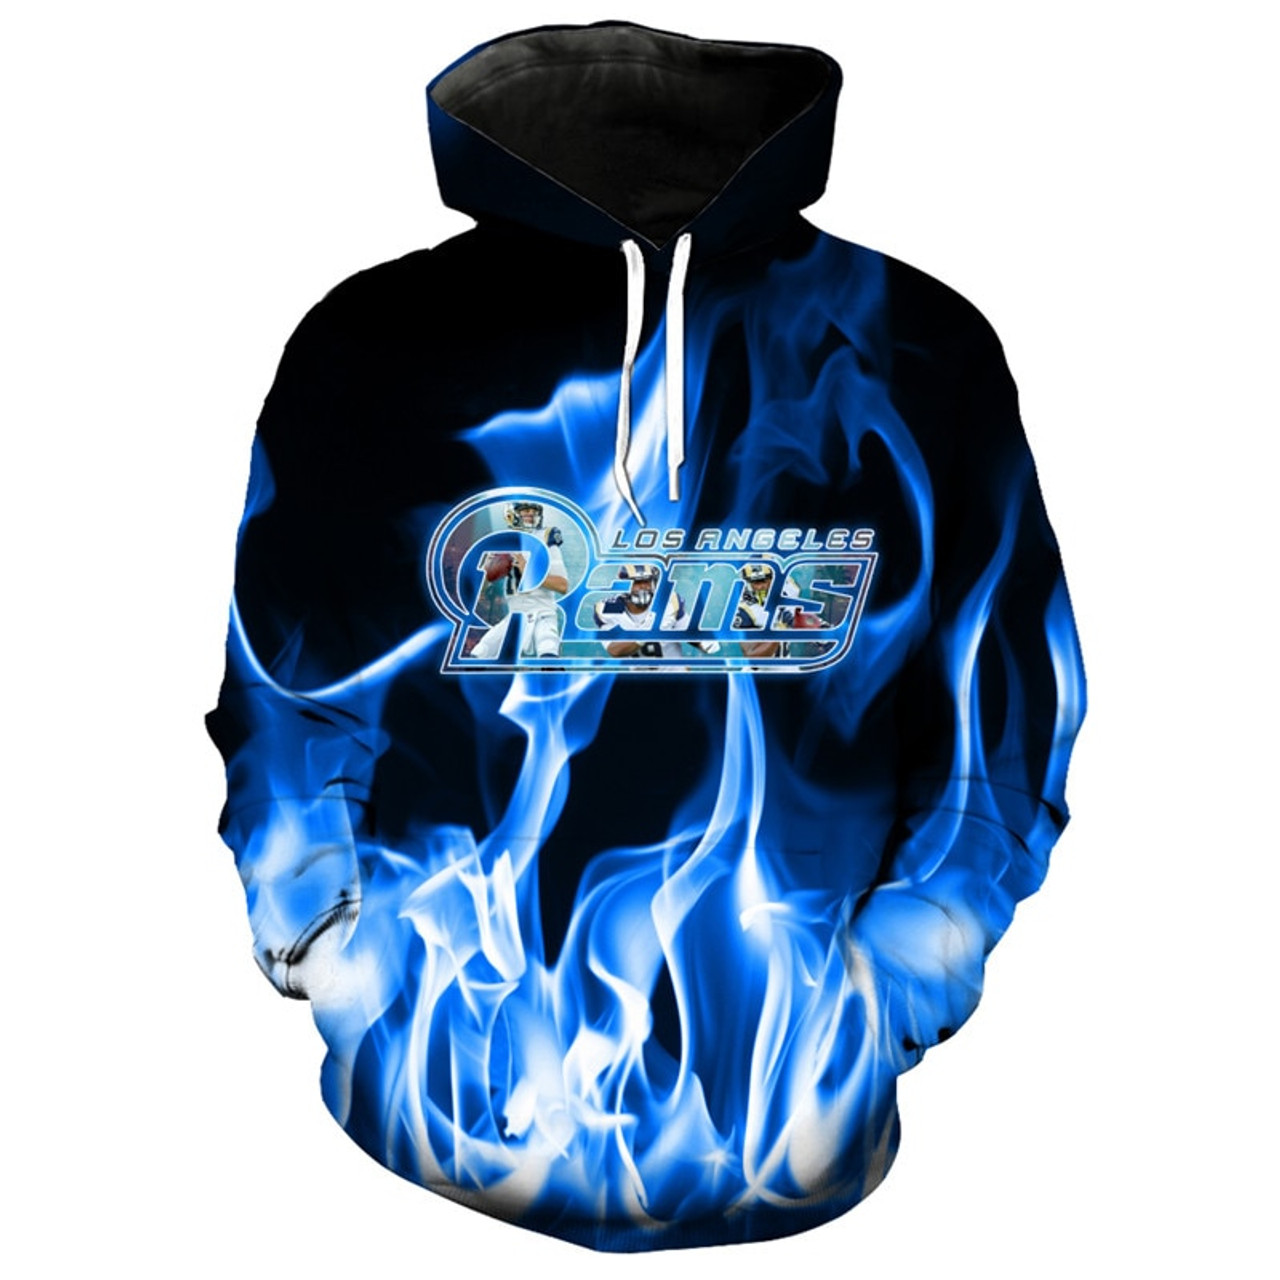 **(NEW-OFFICIALLY-LICENSED-N.F.L.LOS-ANGELES-RAMS,OFFICIAL-TEAM-HOODIES/NEW-CUSTOM-DETAILED-3D-GRAPHIC-PRINTED/PREMIUM-ALL-OVER-DOUBLE-SIDED-GRAPHICS/OFFICIAL-RAMS-TEAM-COLORS & CLASSIC-RAMS-LOGOS/JARED-GOFF-NO.16-PULLOVER-FIERY-TEAM-HOODIES)**